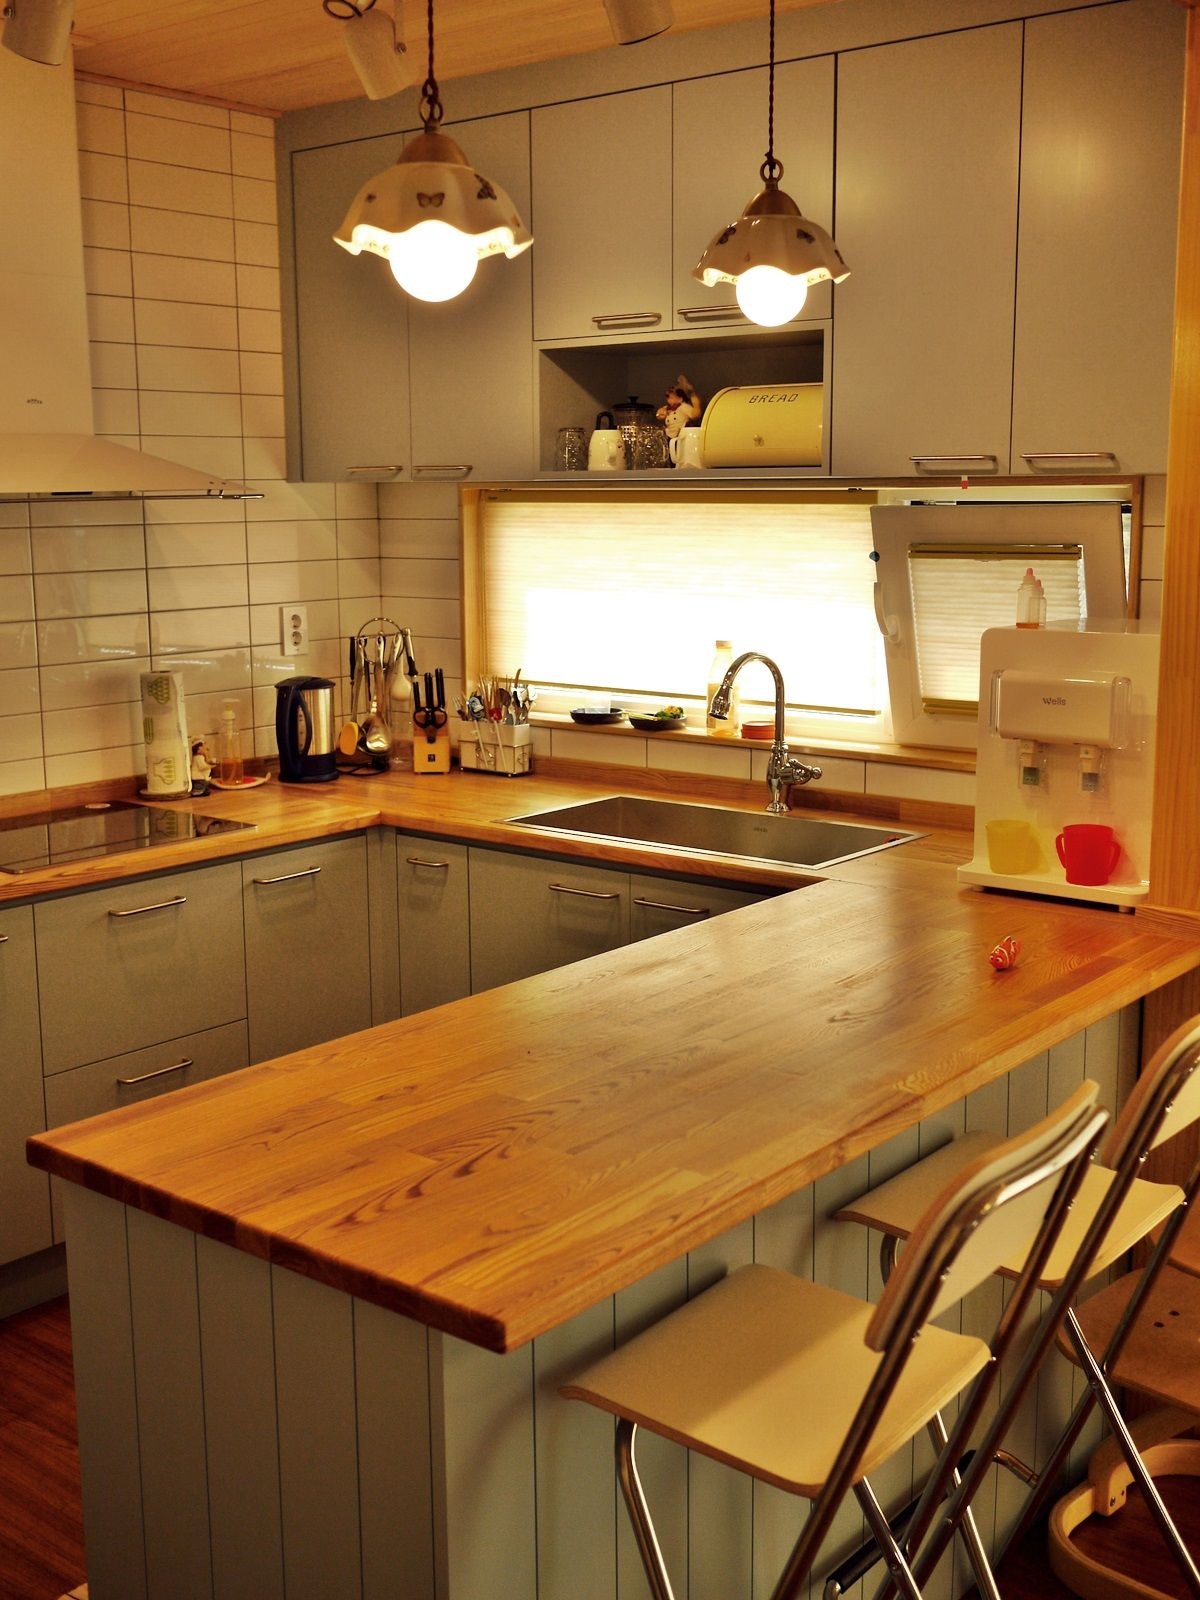 kitchen, wooden floor, green wooden cabinet, wooden counter top, grey cabnet, pendant